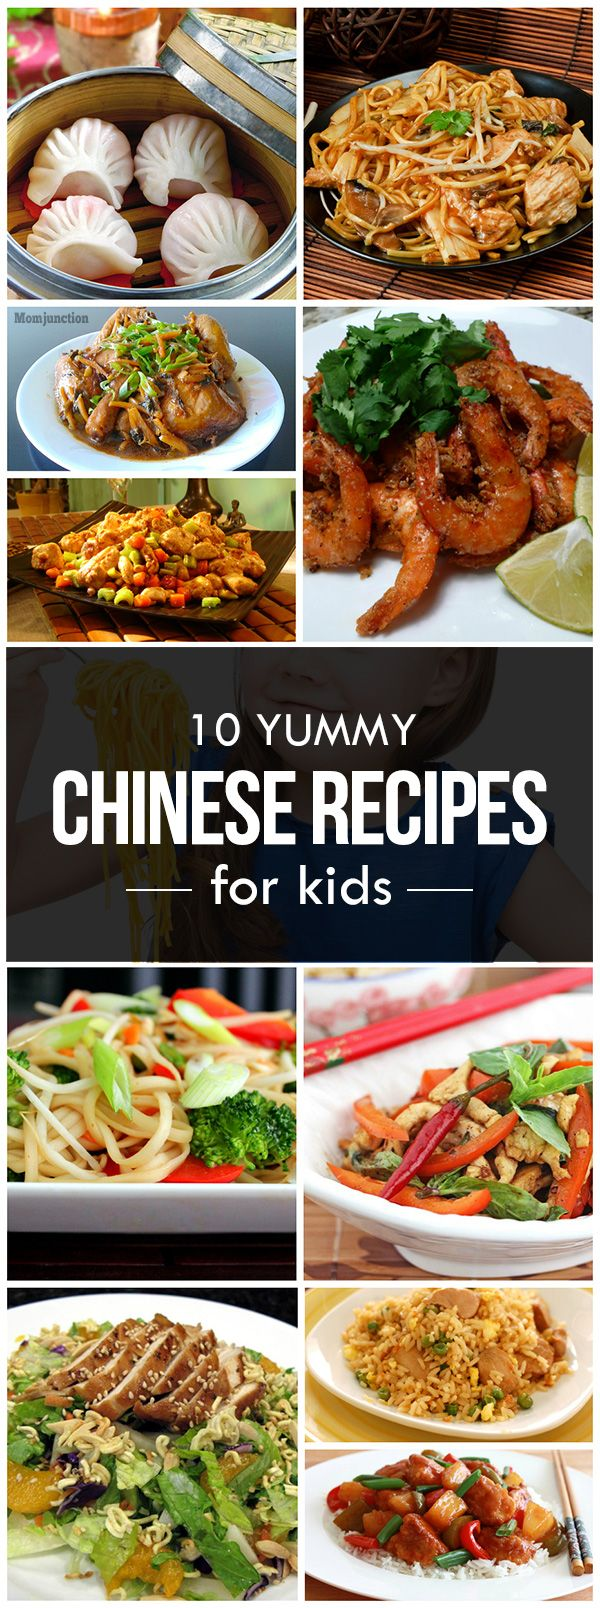 10 easy chinese recipes for kids to try pinterest chinese 10 yummy chinese recipes for kids today we have come up with ten delicious chinese recipes that you can prepare in less than an hour forumfinder